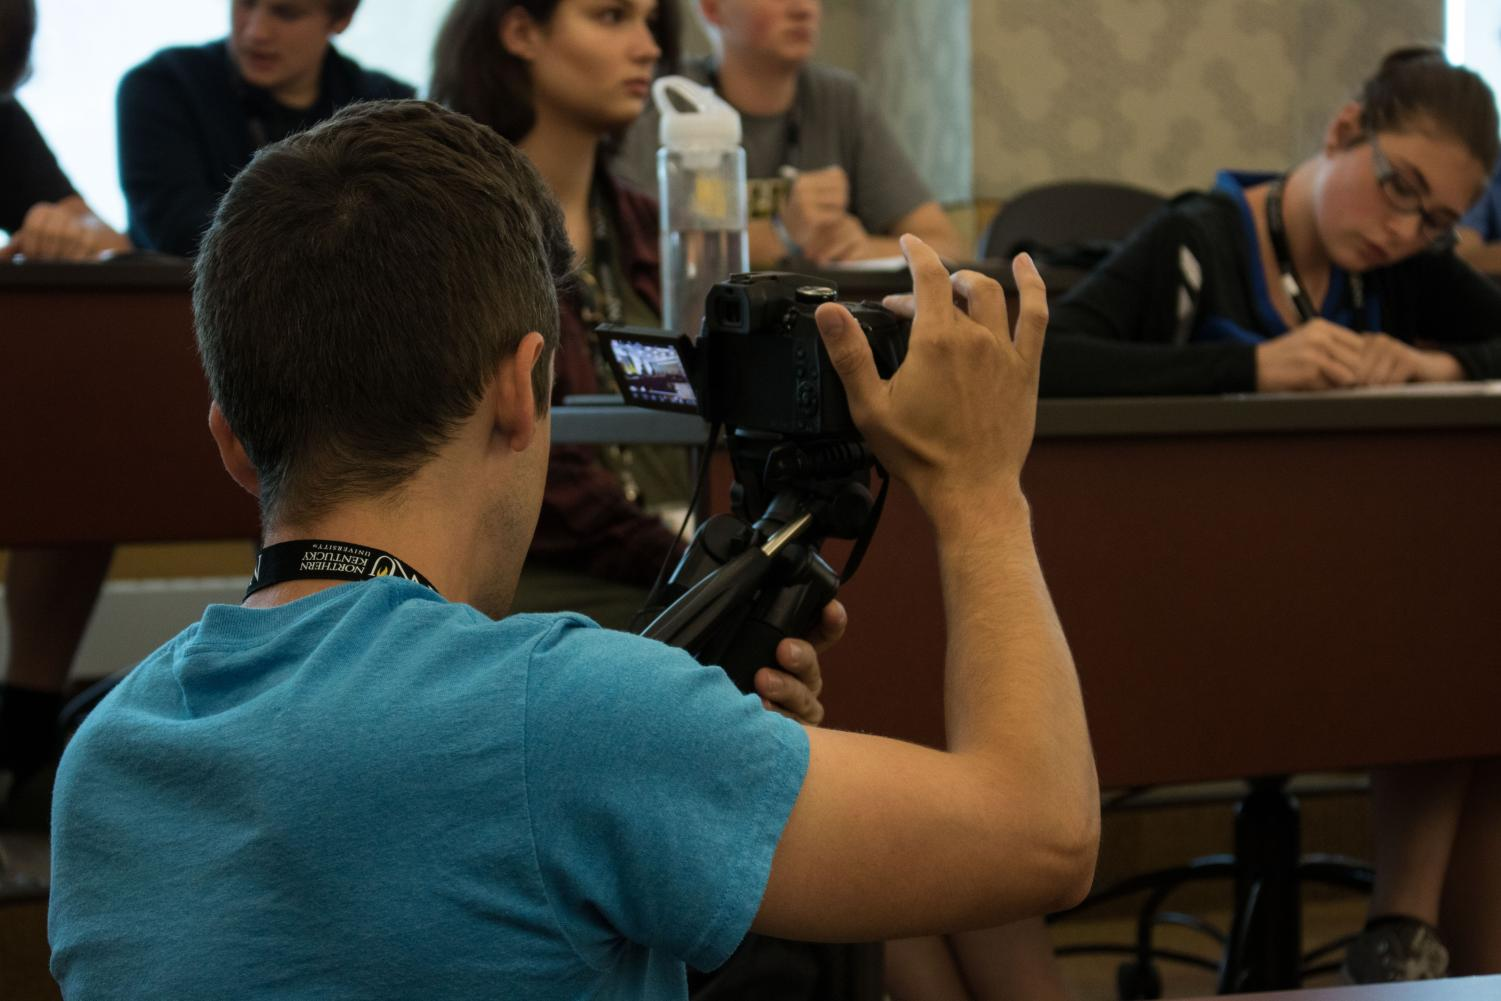 Mentor+Jarred+Clifton+shoots+video+of+the+afternoon+press+conference.